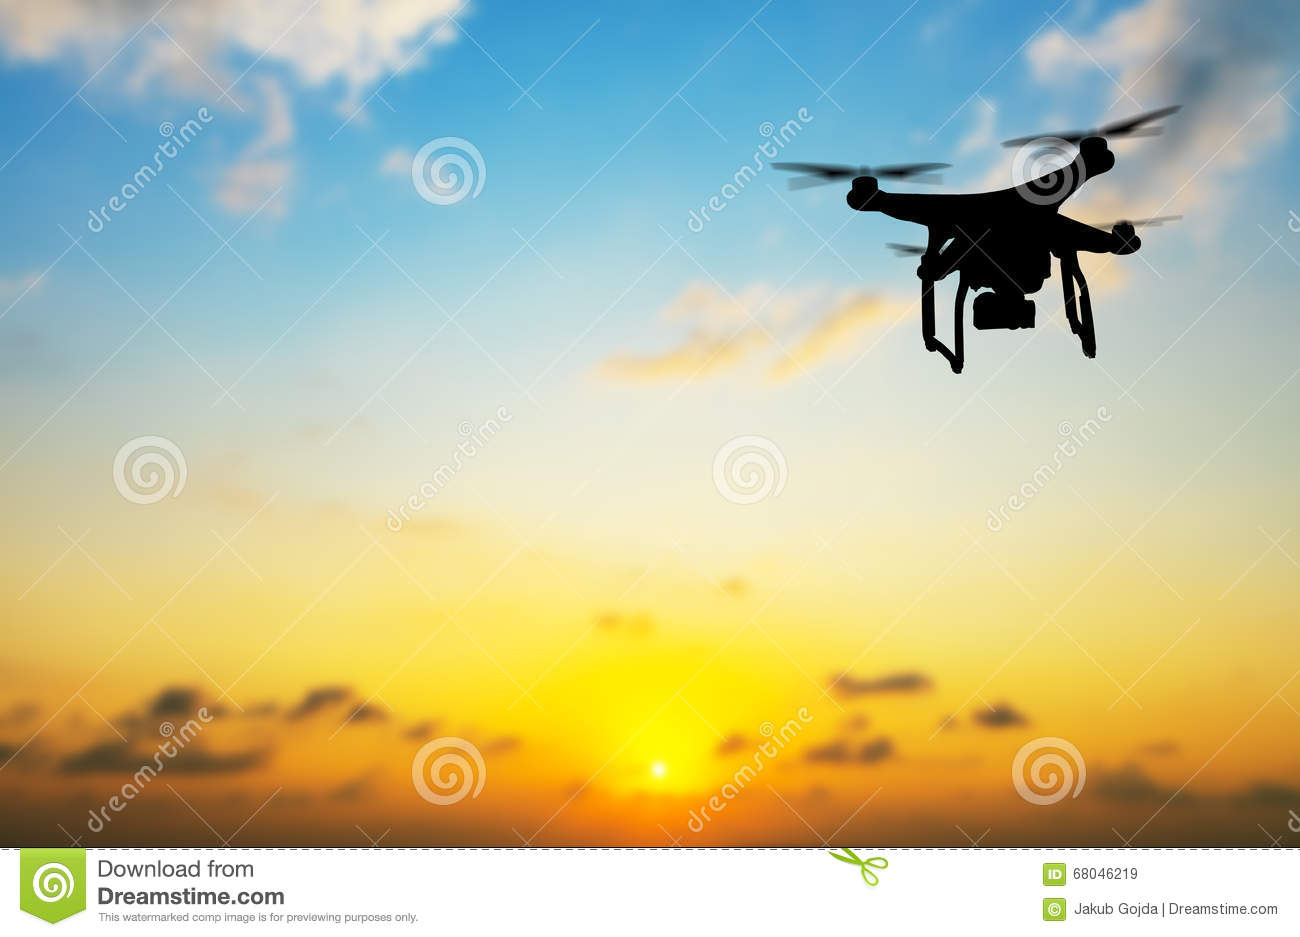 remote controlled camera helicopter with Stock Photo Flying Silhouette Drone Against Sunset Beautiful Sky Image68046219 on Giant Scale Rc Airplanes as well EliteMiniOrion24GHz45CHLiveViewCameraRCDrone as well Other Spy Car W  Camera P 113555 likewise Royalty Free Stock Image Flying Craft Digital Camera Driving Remote Control Image33743586 additionally 32376603819.